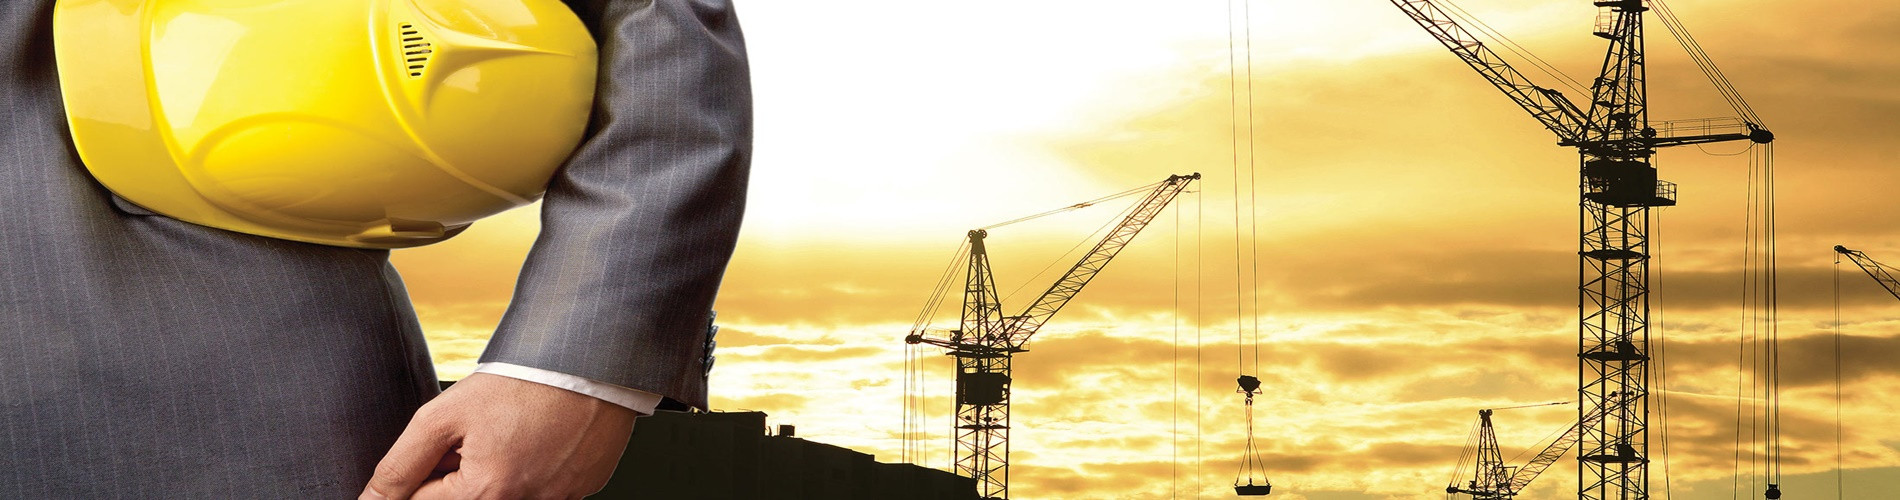 banner-1-Construction